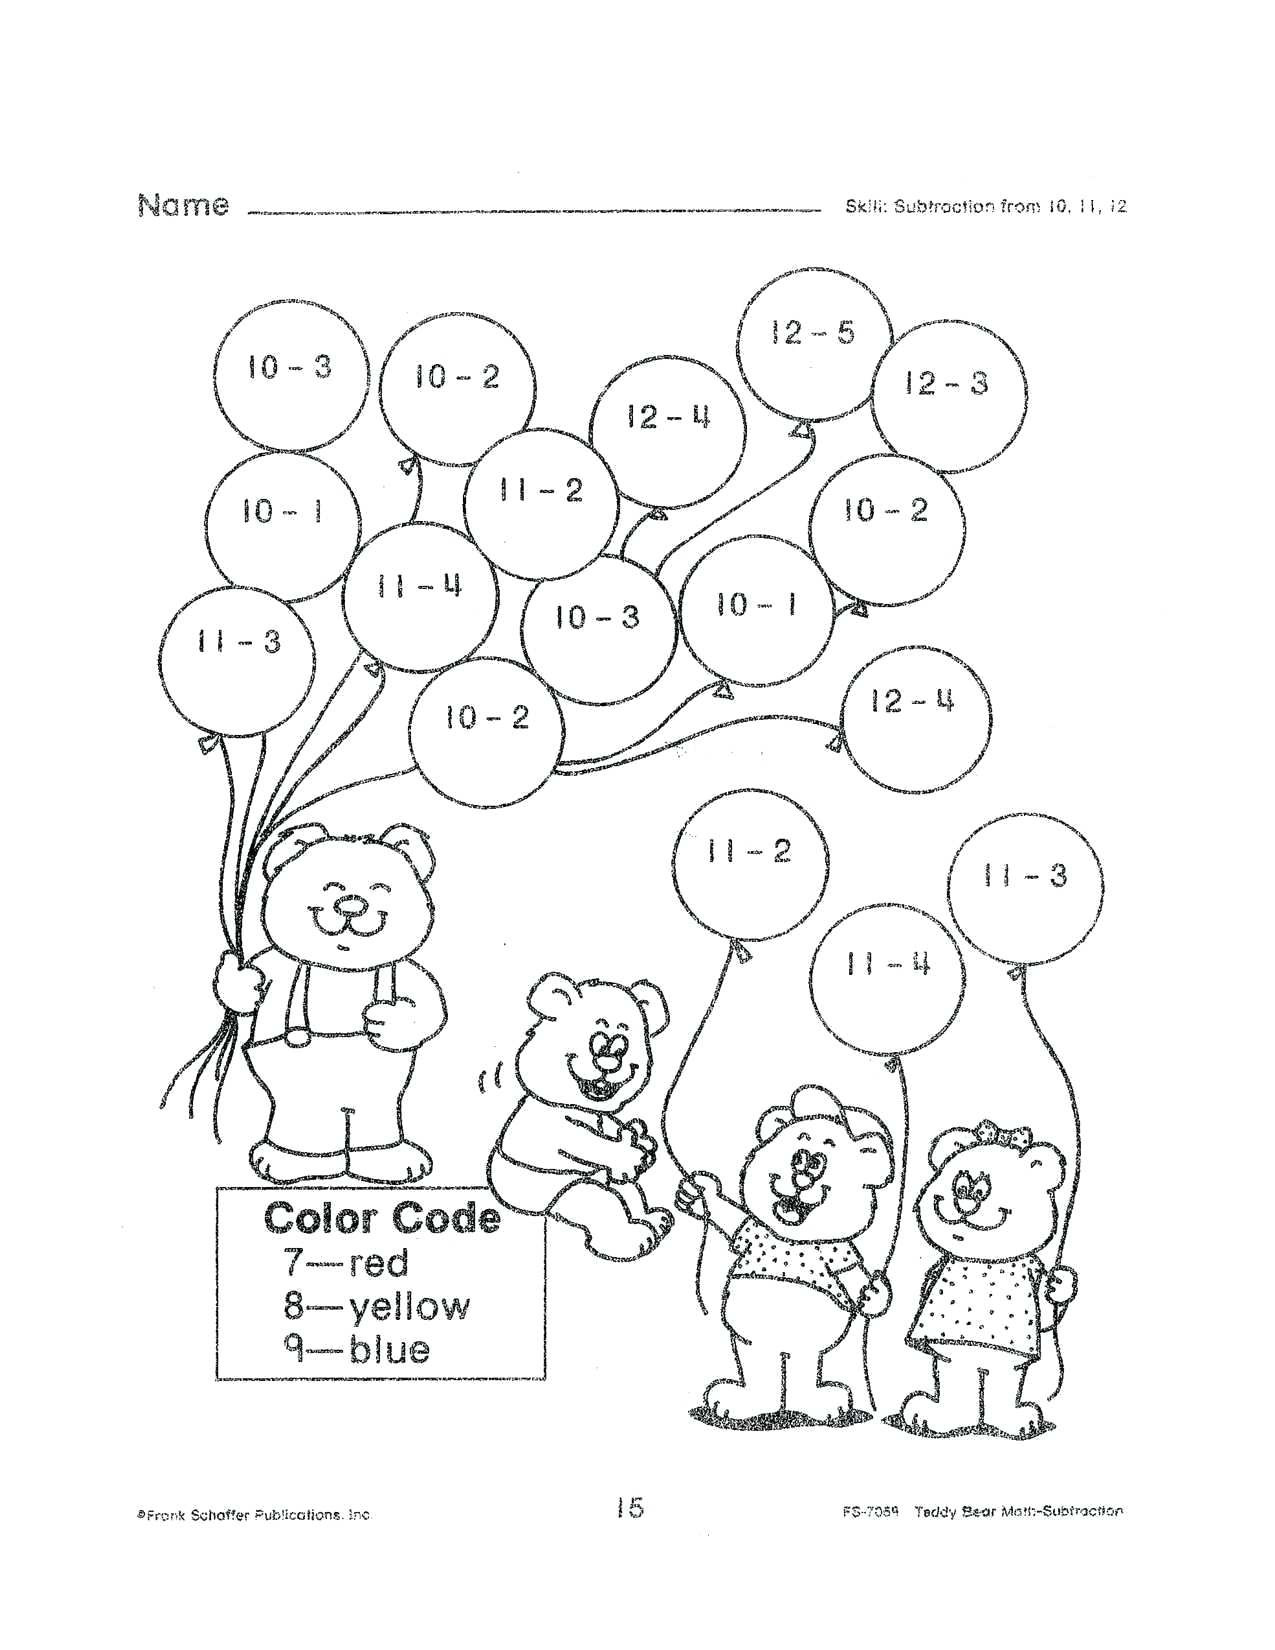 Color Blue Worksheets for Preschool Coloring Kids Worksheets Printable Kid Activity Sheets Fun